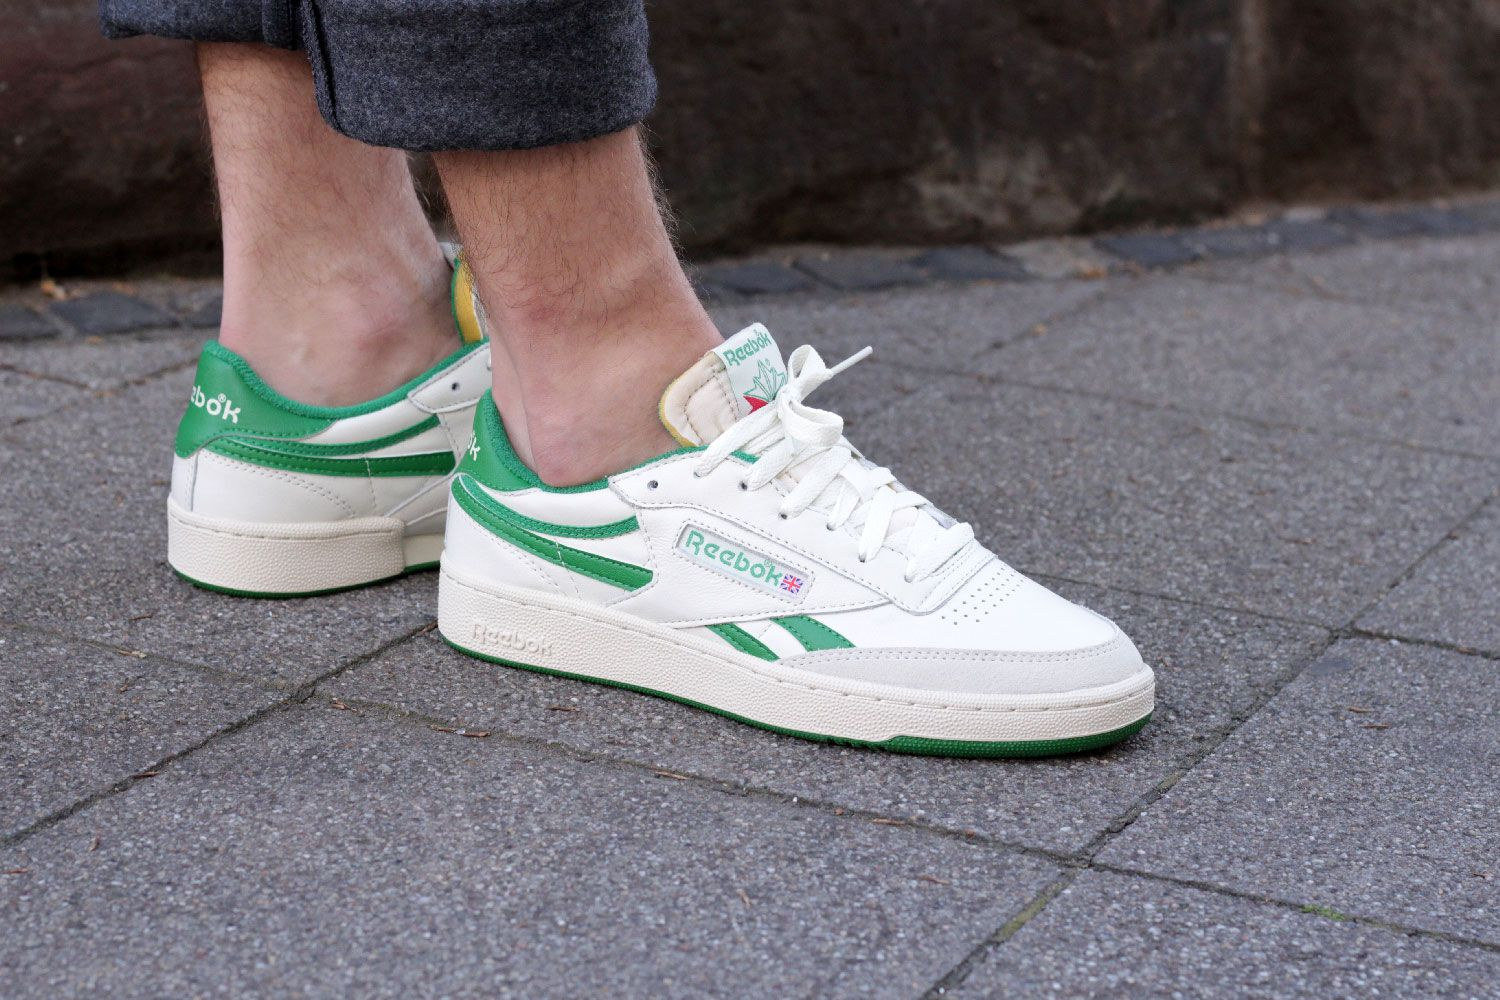 reebok revenge pack green classic tennis shoe